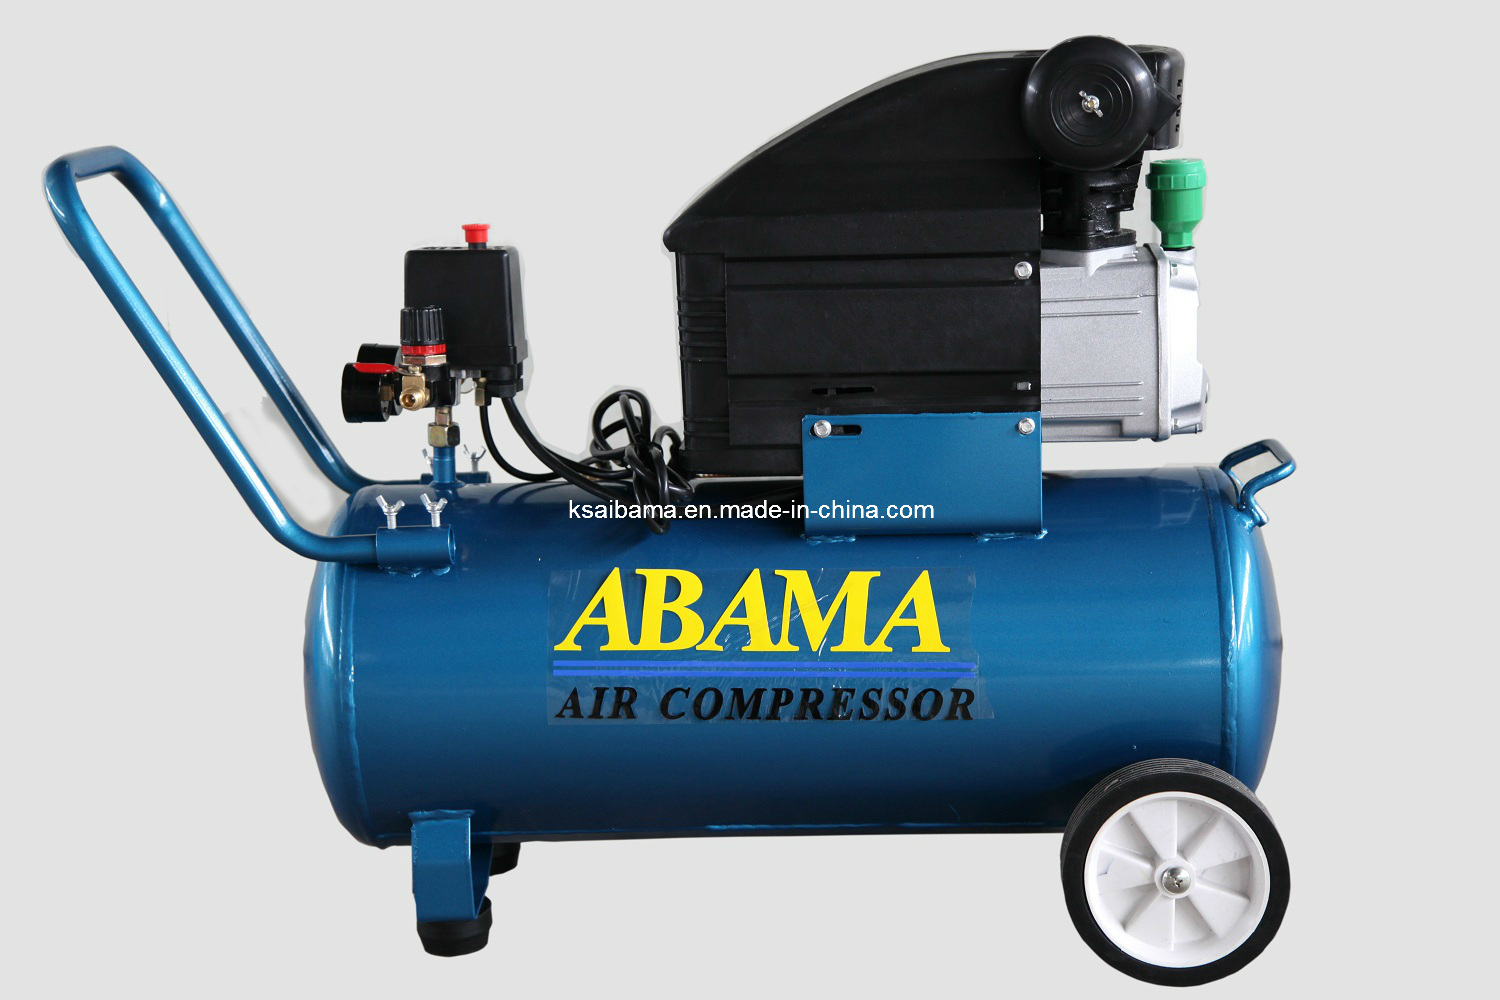 DCP-36 2.5HP Power with 36L Tank Portable Air Compressor